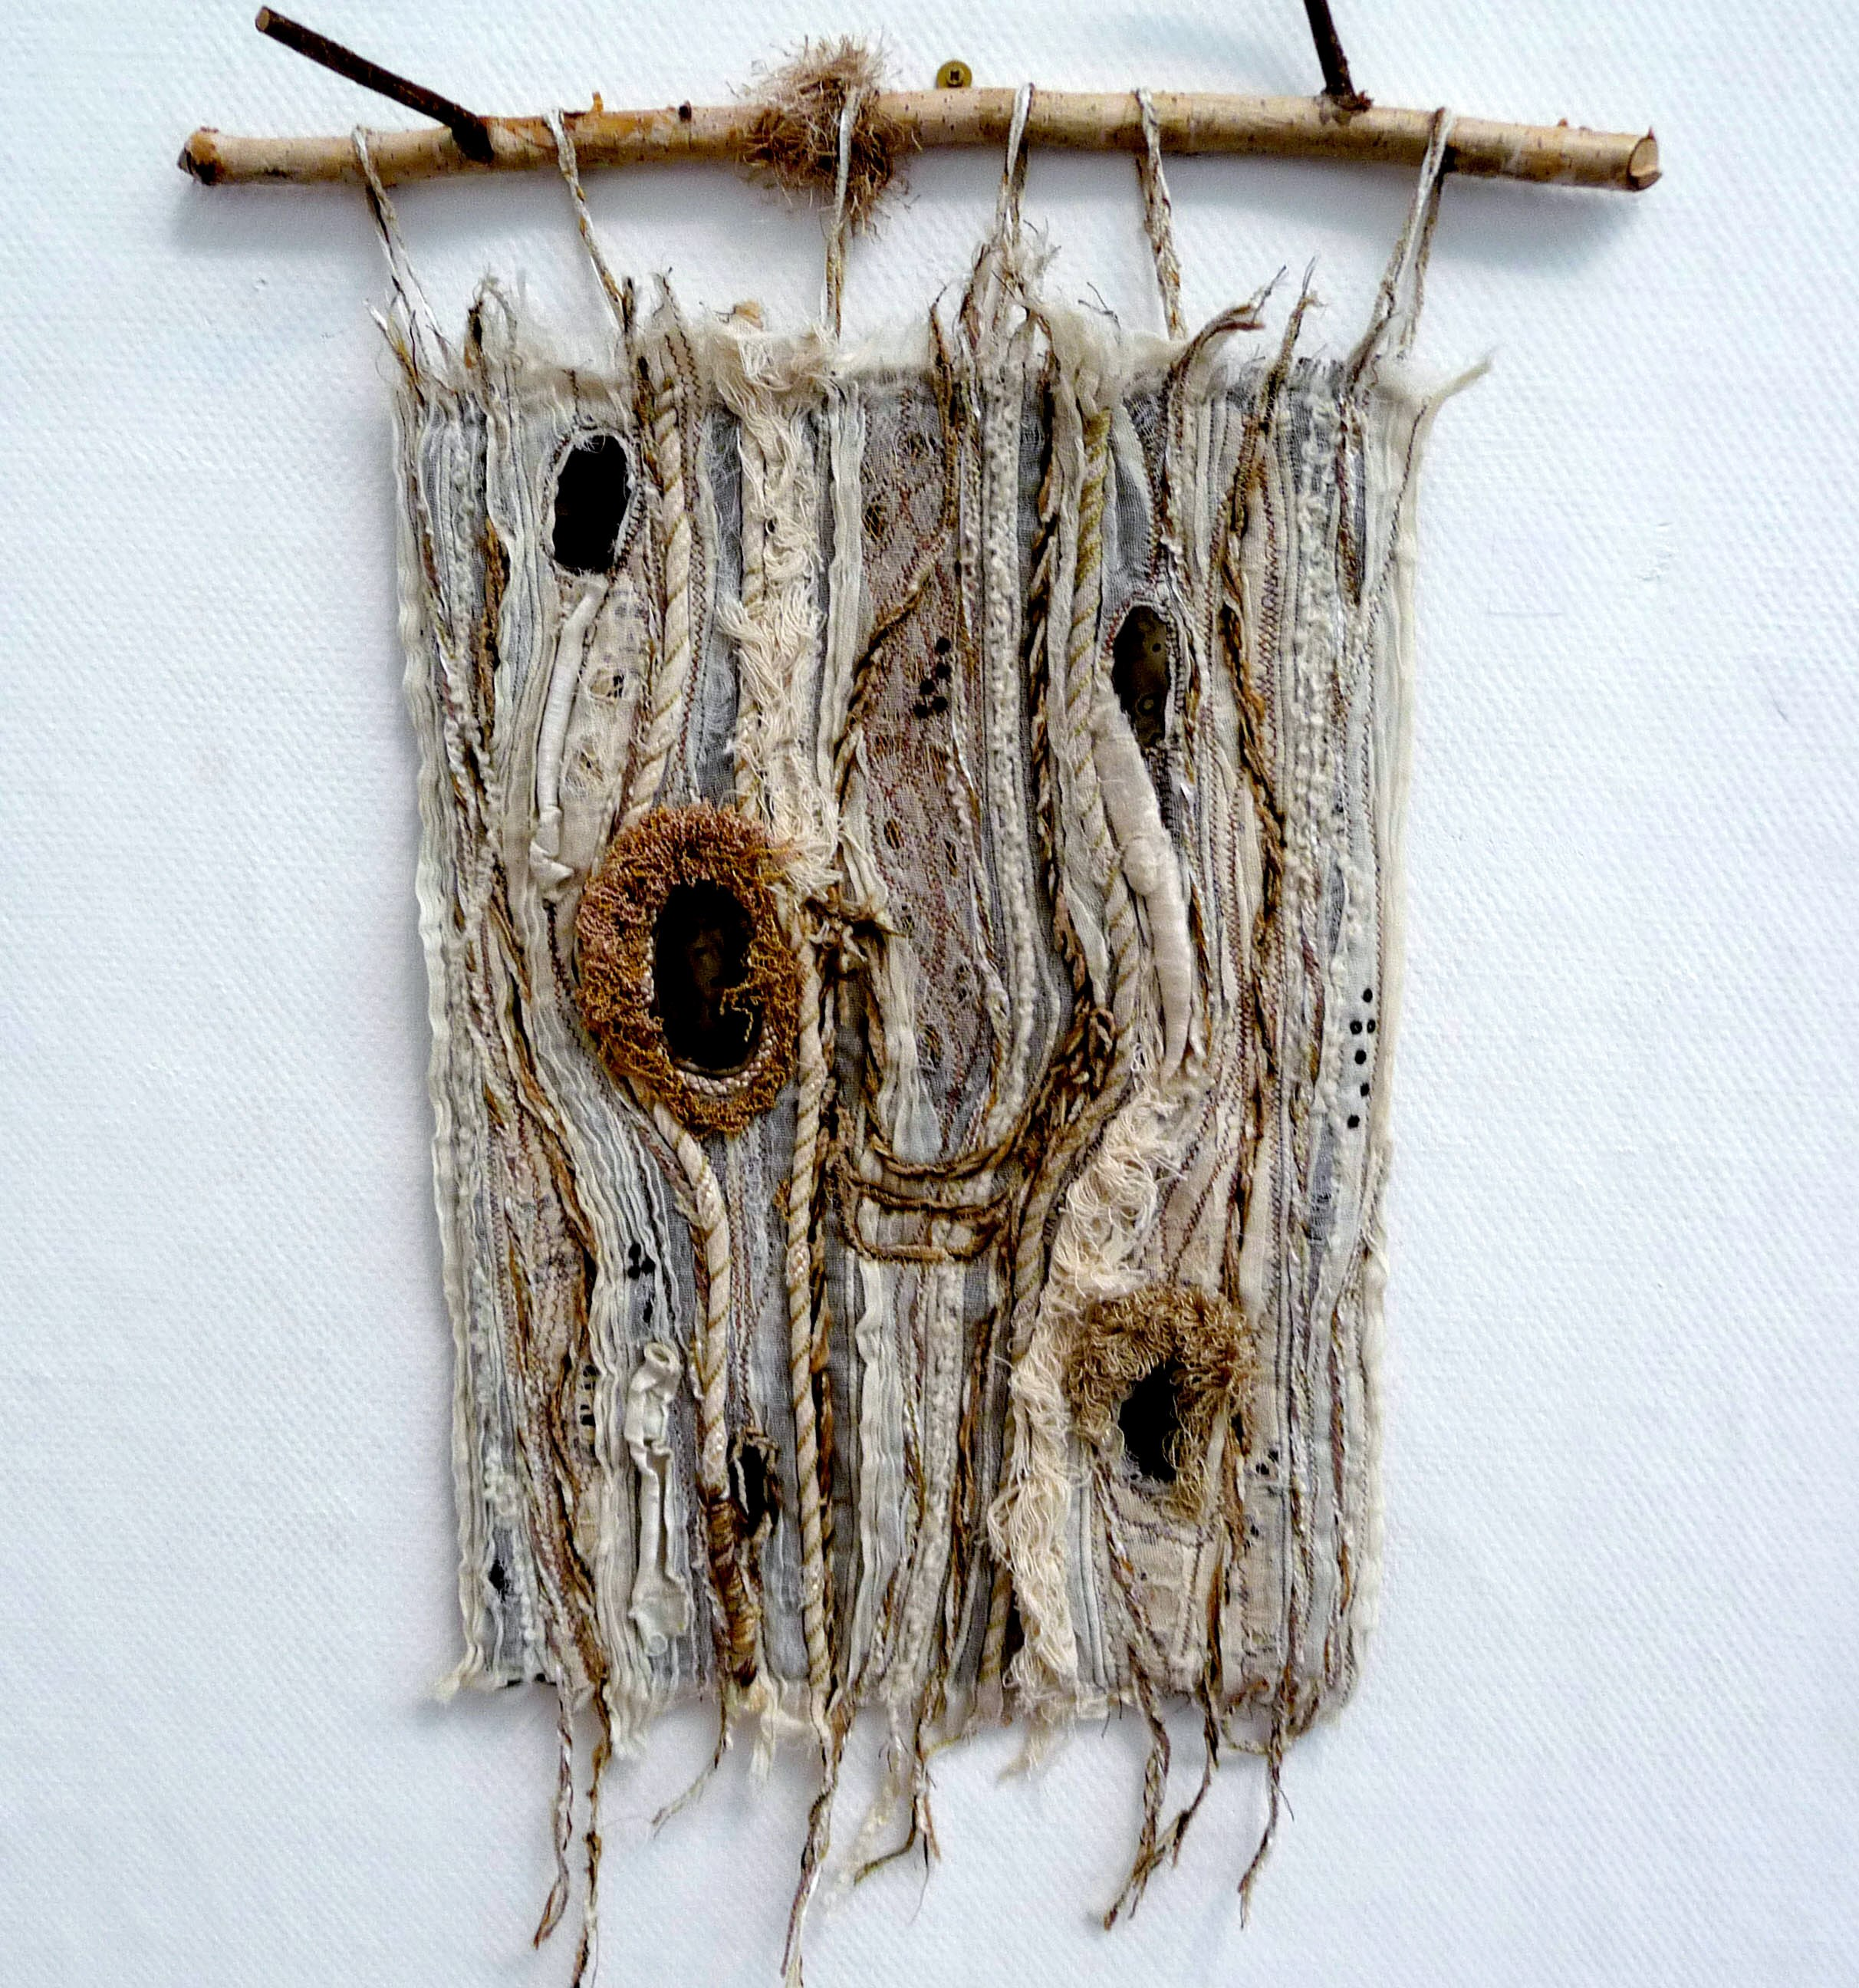 TREE BARK INFLUENCE by Margaret Levens, textured wall hanging, machine stitched with machine made cords